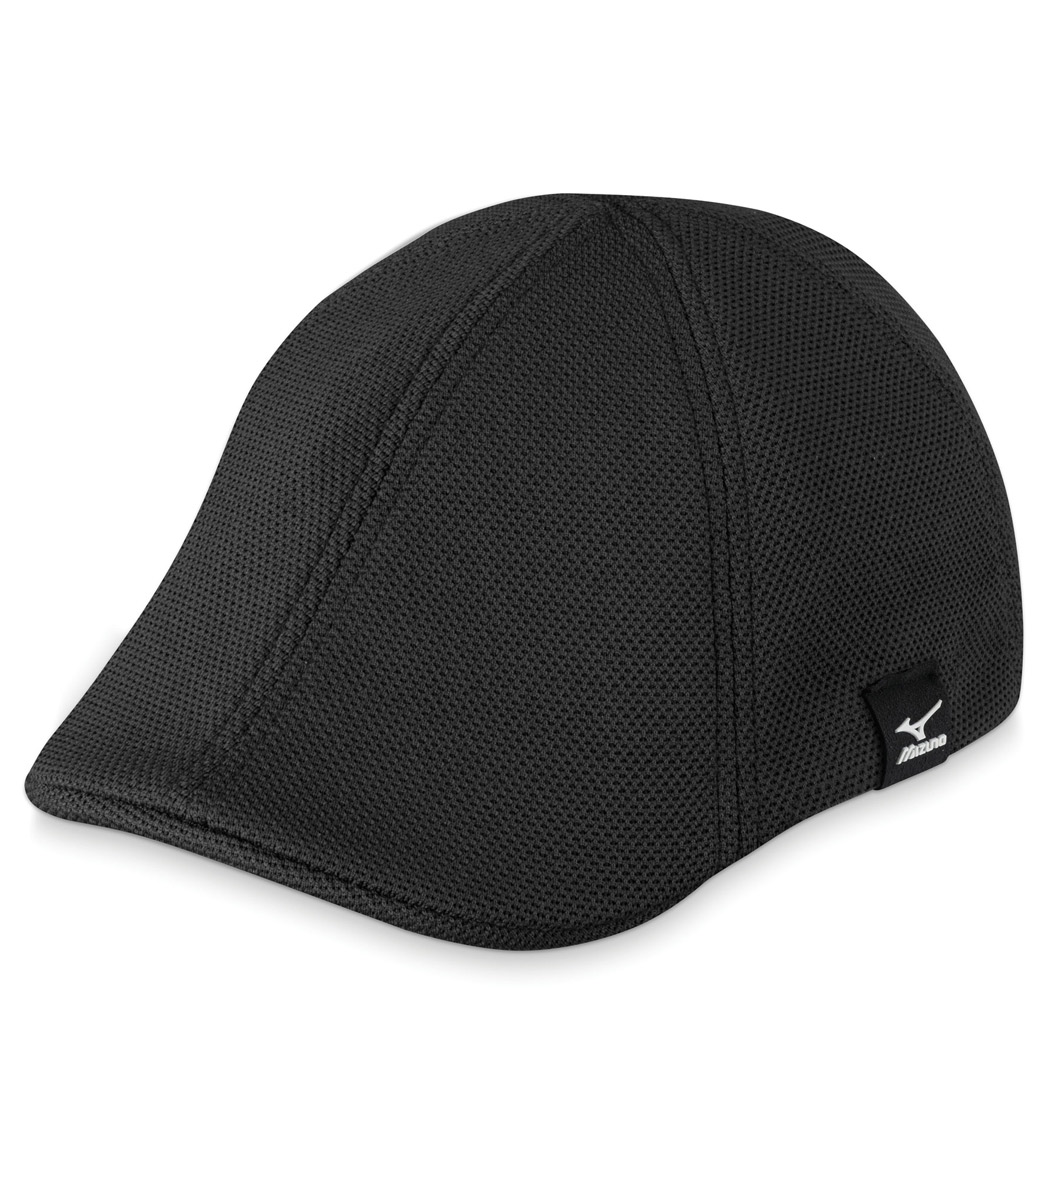 ivycapblk2013 What Are The Latest Fashion Trends of Men's Hats?